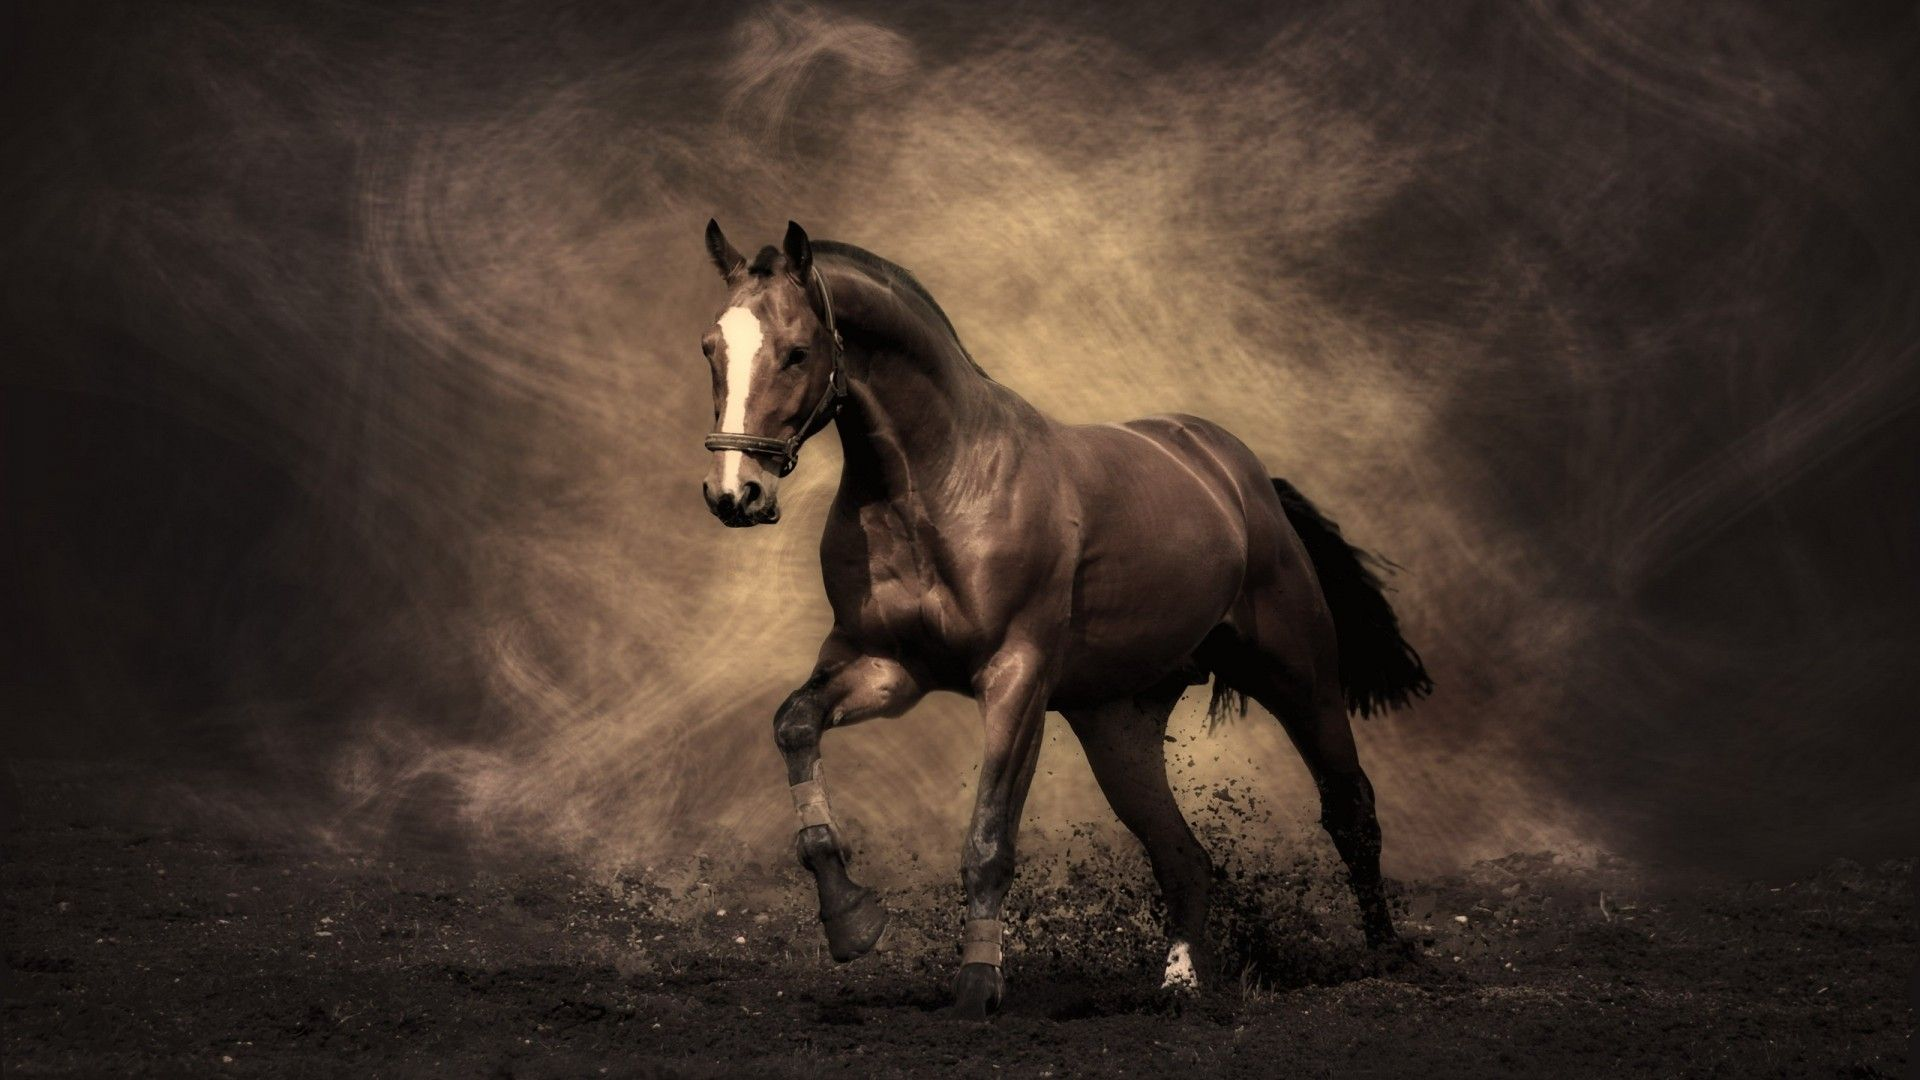 Images Of Horses Horse Desktop In High Resolution For Free Get Arabian Racing Horse Horse Wallpaper Horses Horse Painting